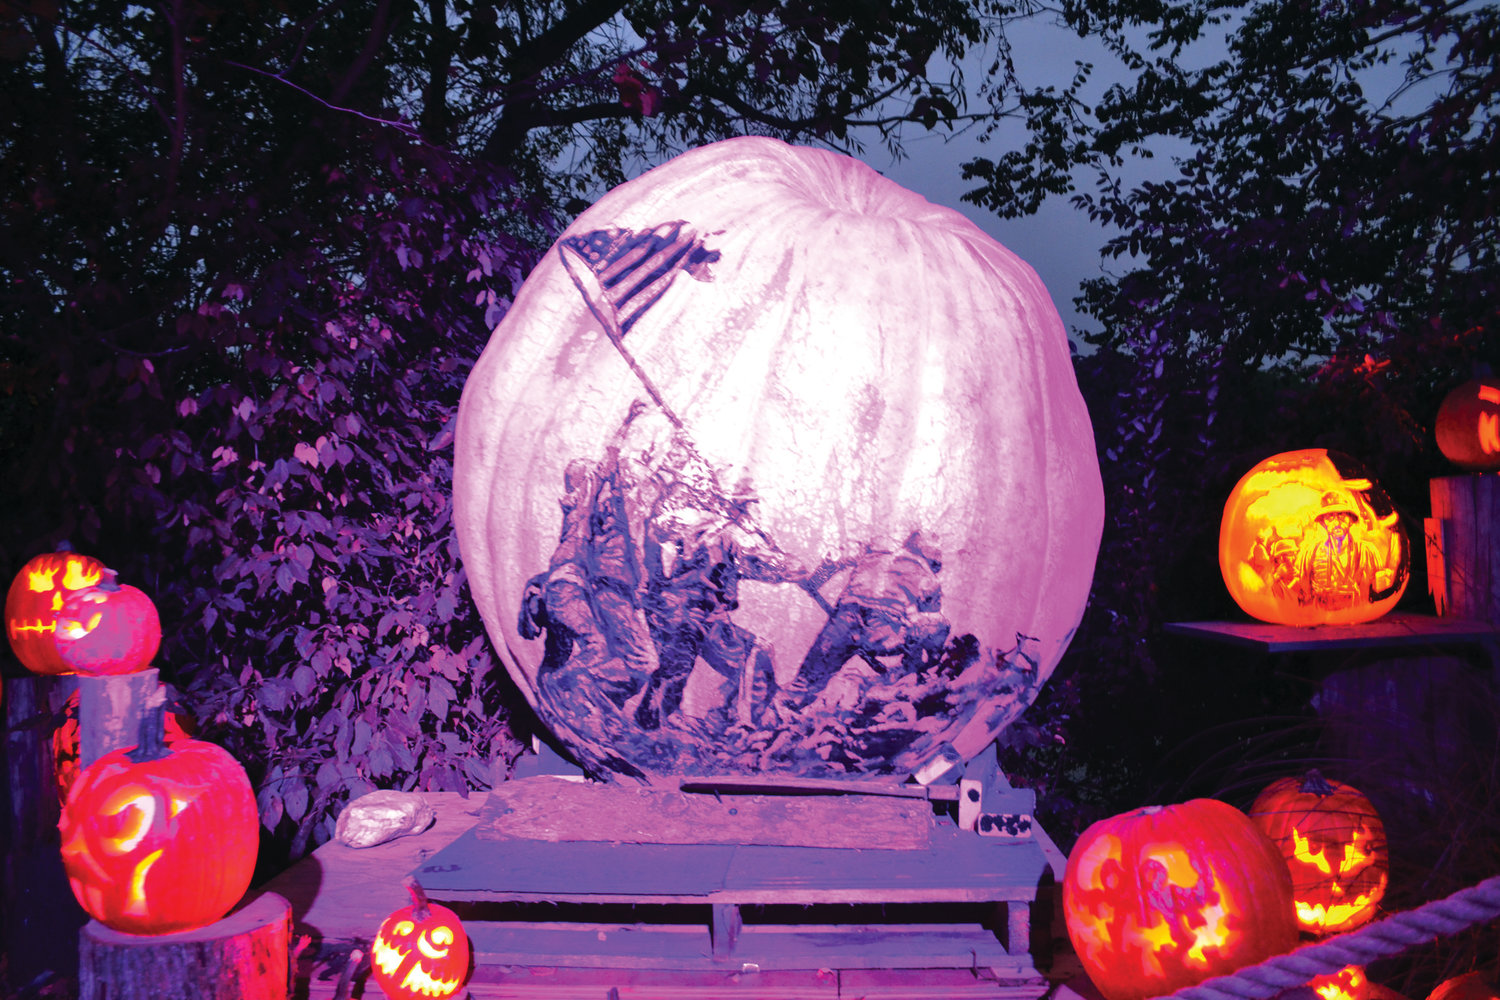 ONE OF THE BIGGEST: This 1,700-pound pumpkin depicting the flag planting at Iwo Jima is one of the heaviest featured at this year's Jack-O-Lantern Spectacular.